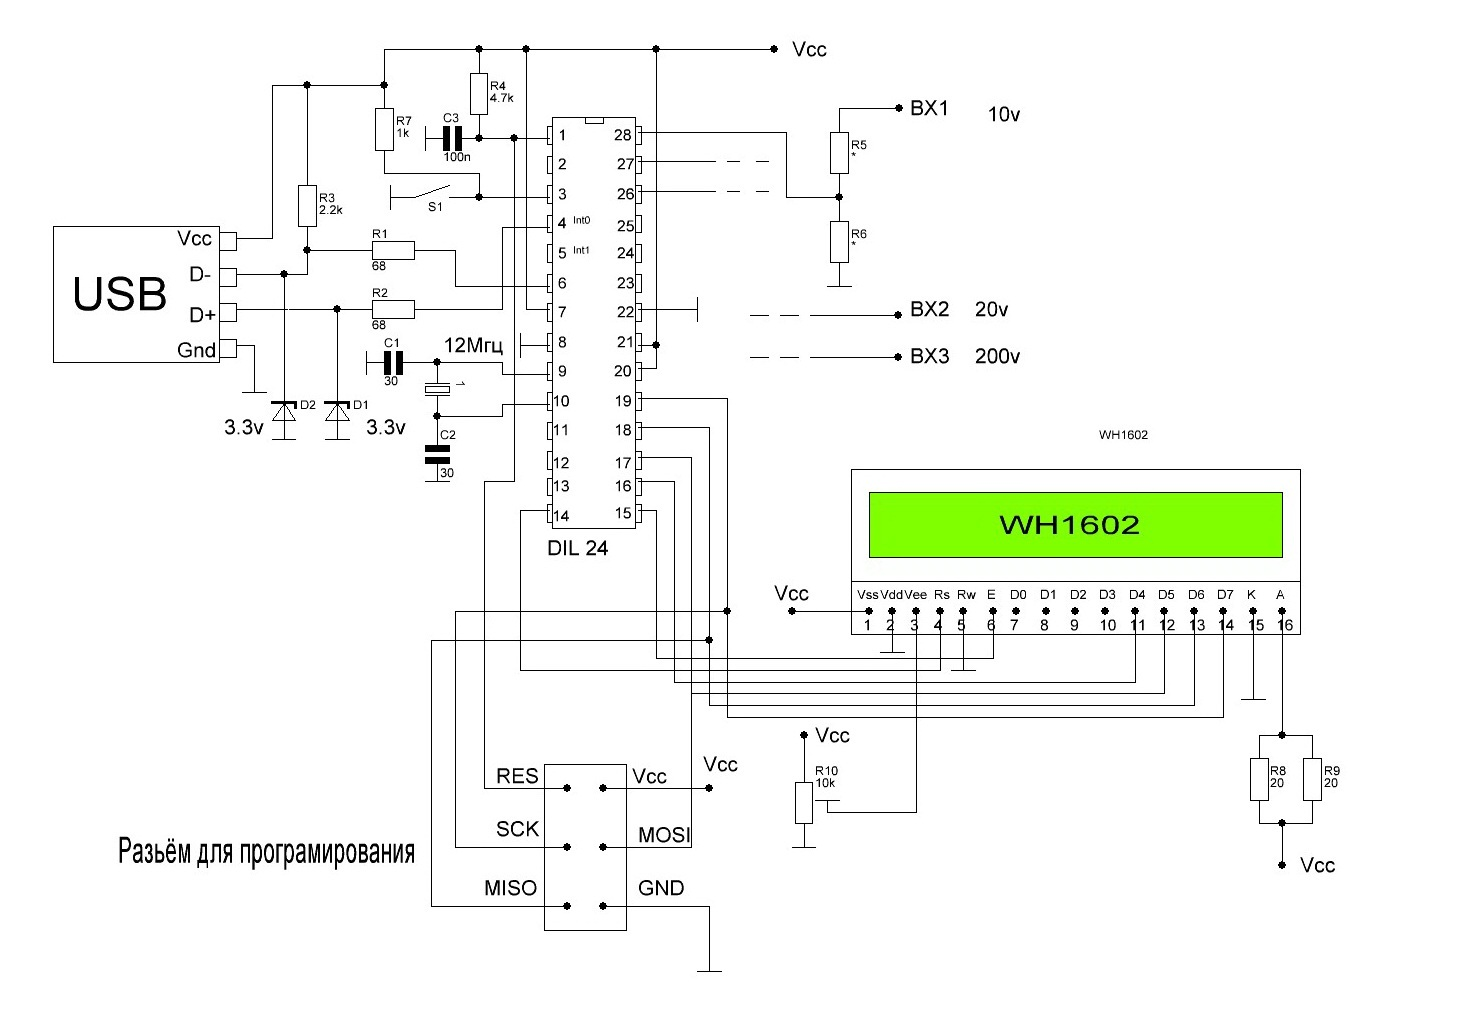 pic16f688 based voltmeter Digital voltmeter (dvm) using pic16f688 card reader using pic16f688 dds/pll based vfo to pic microcontroller projects list (800 projects.